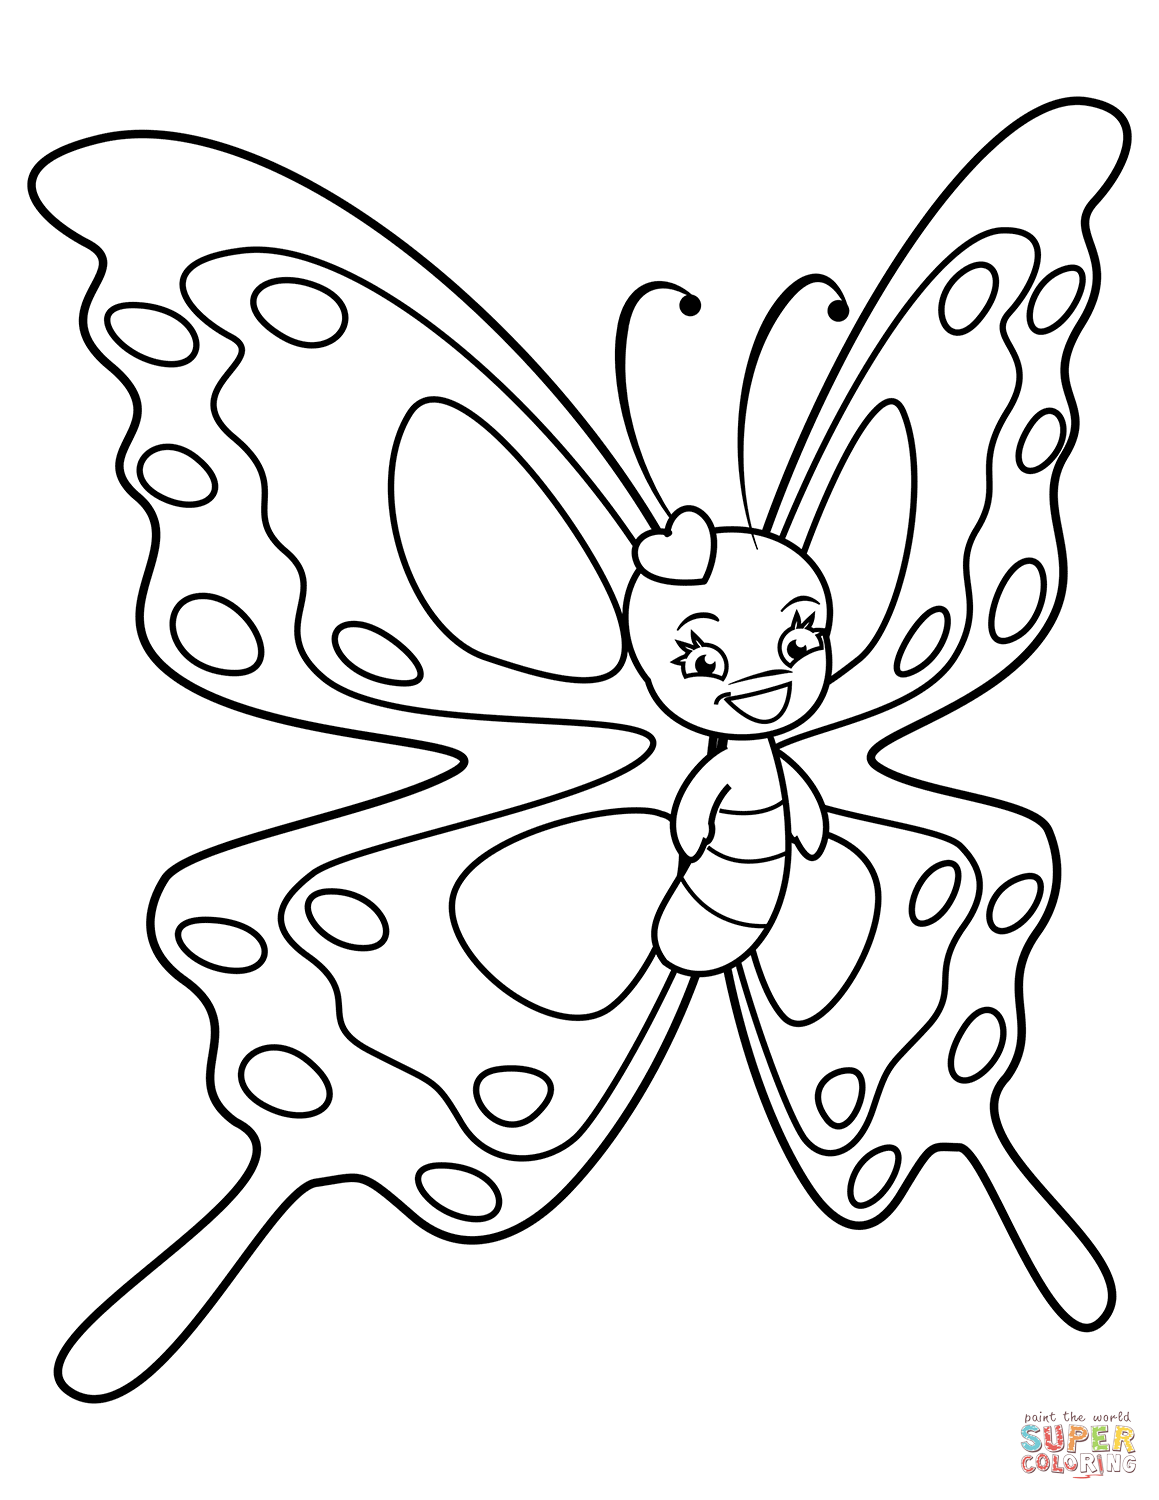 Cute Butterfly With Sweet Smile Coloring Page